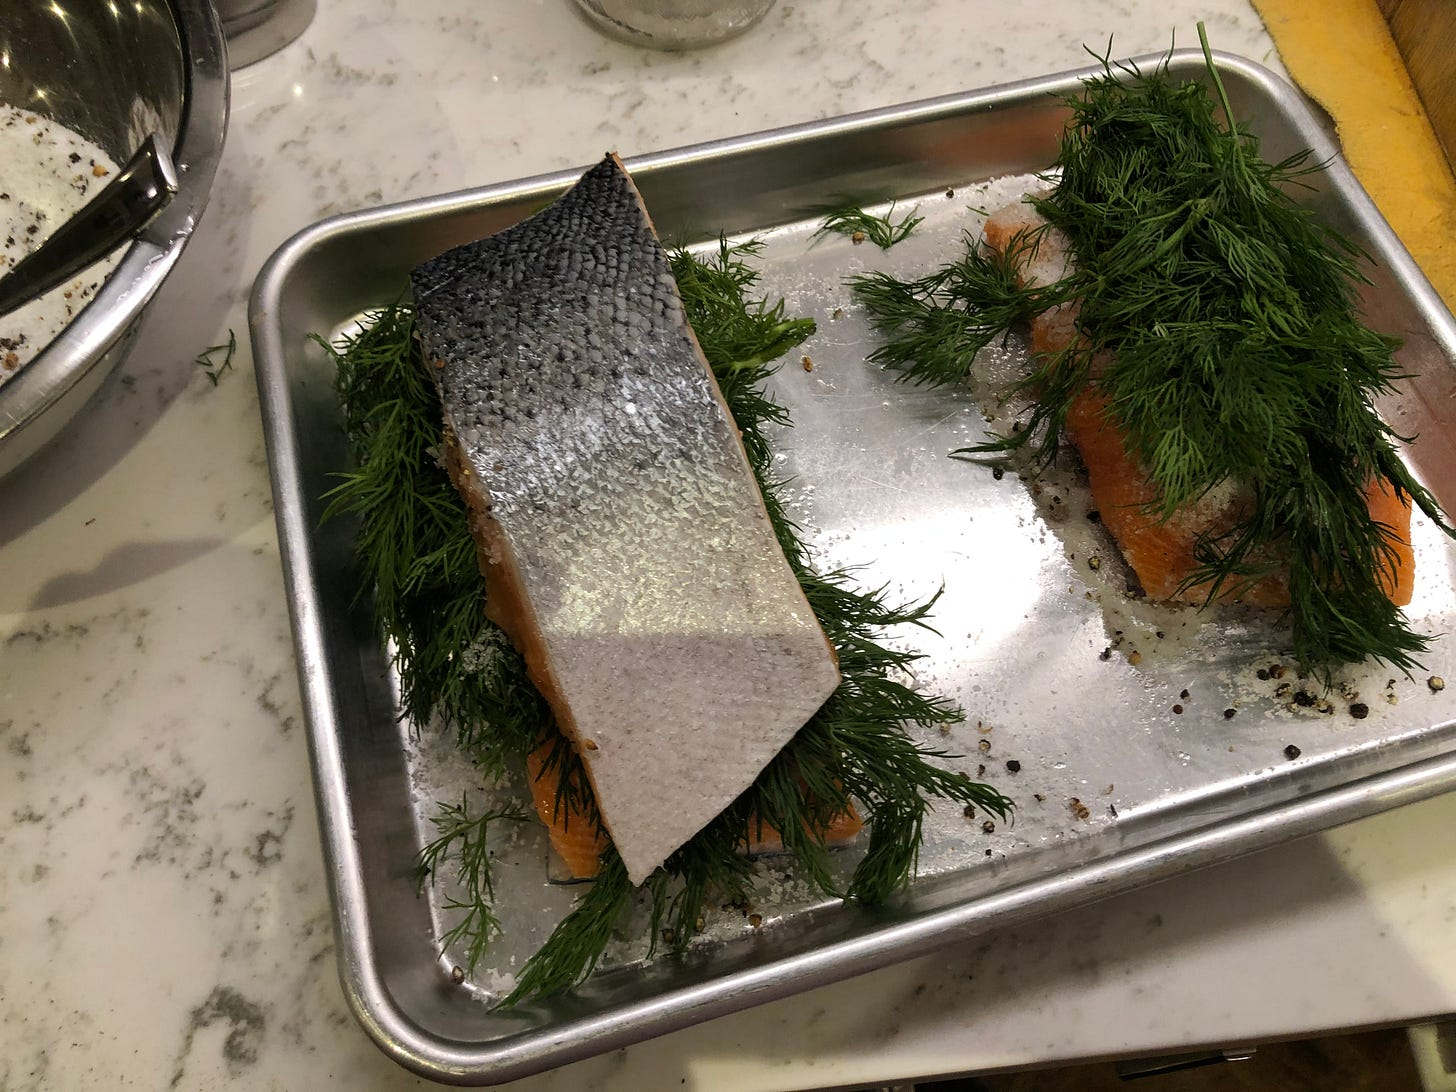 One piece of salmon on top of another.